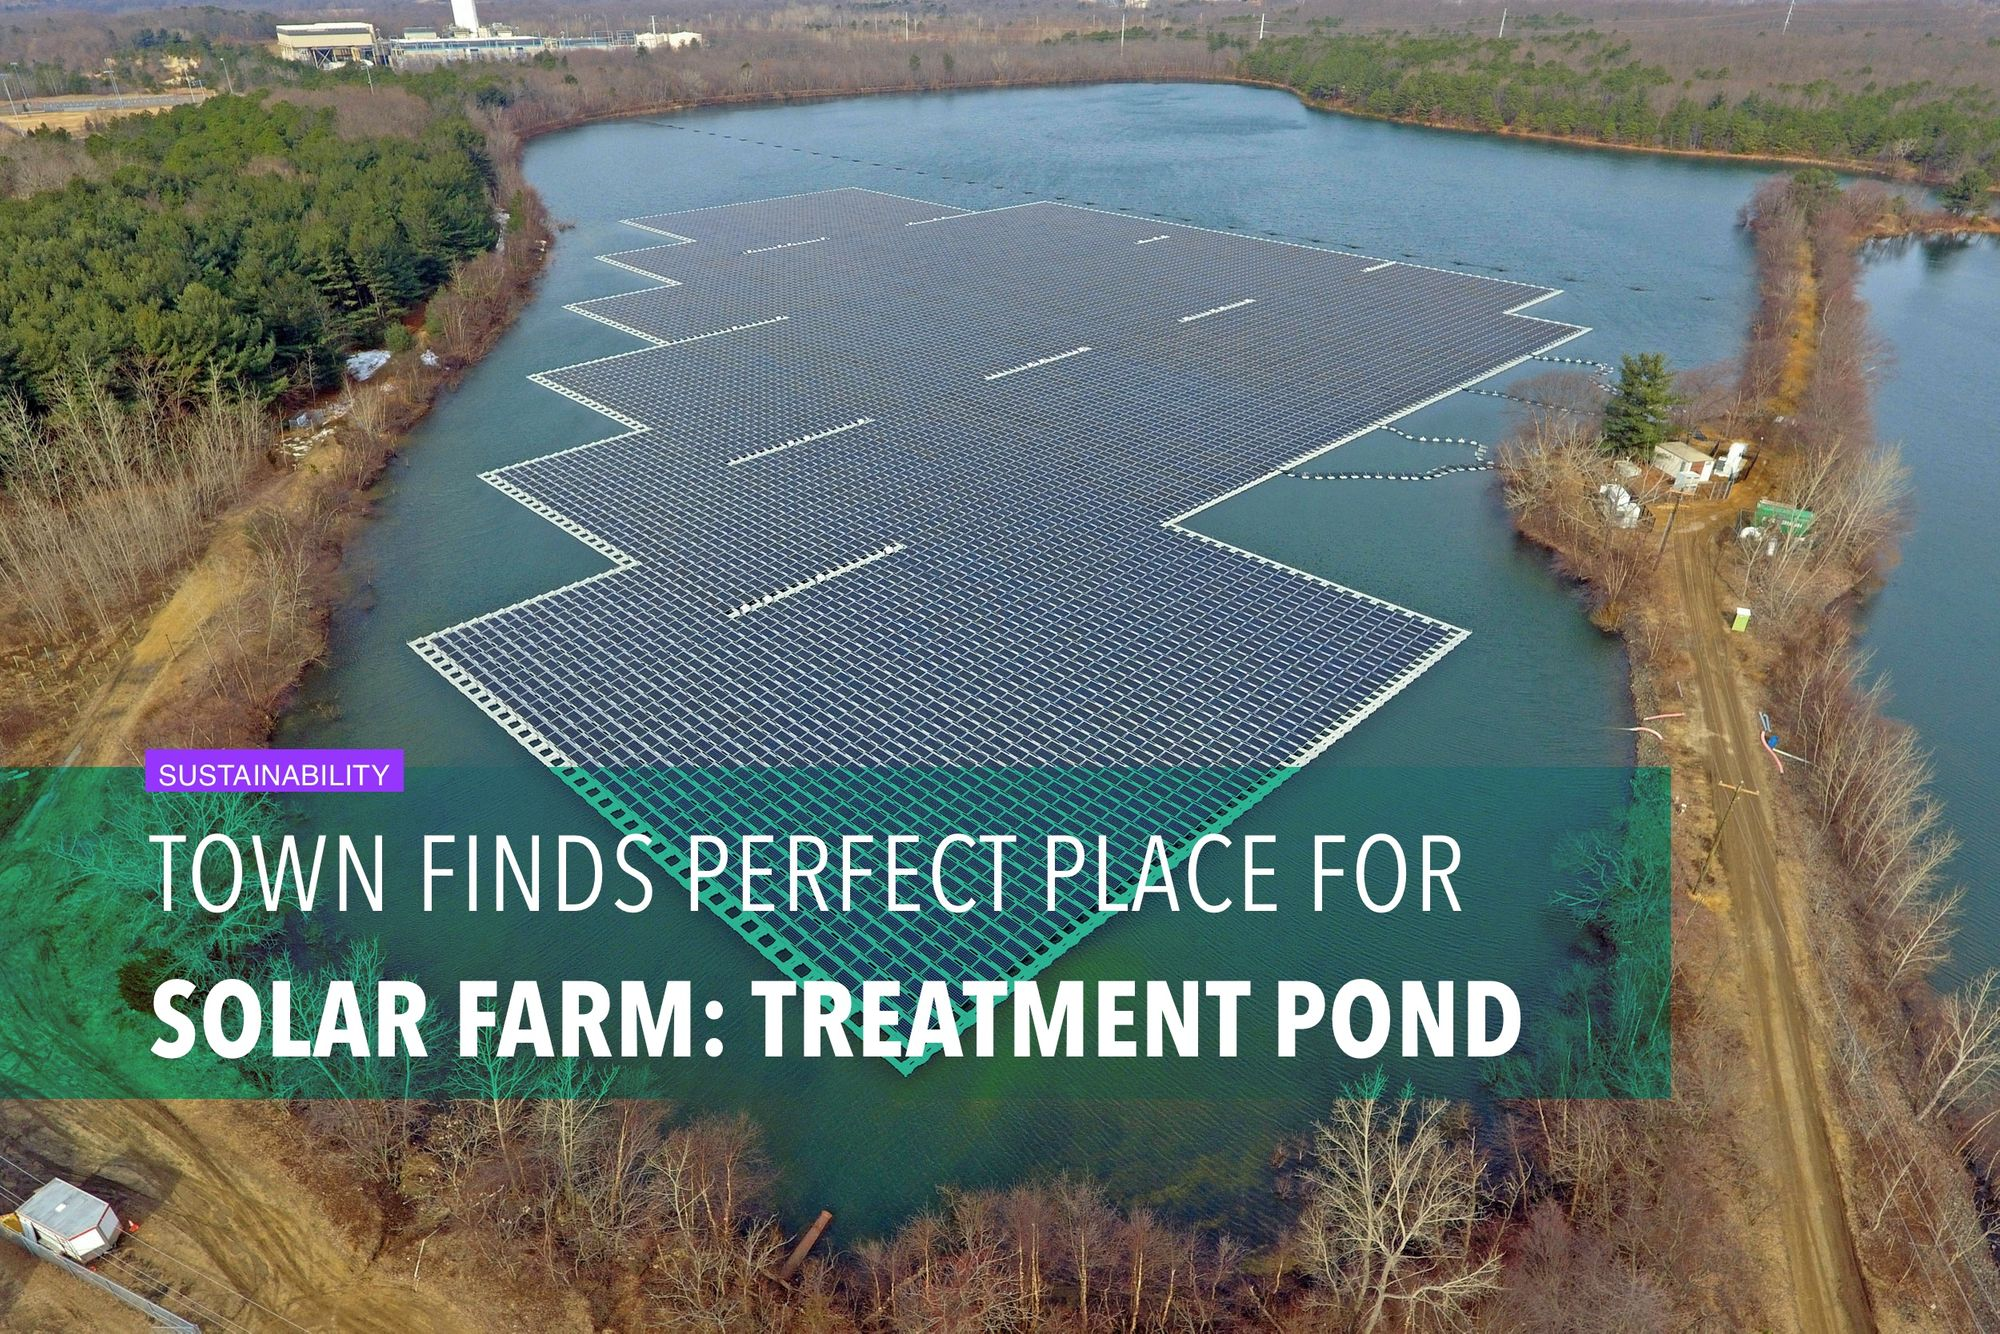 Town finds perfect place for solar farm: water treatment pond